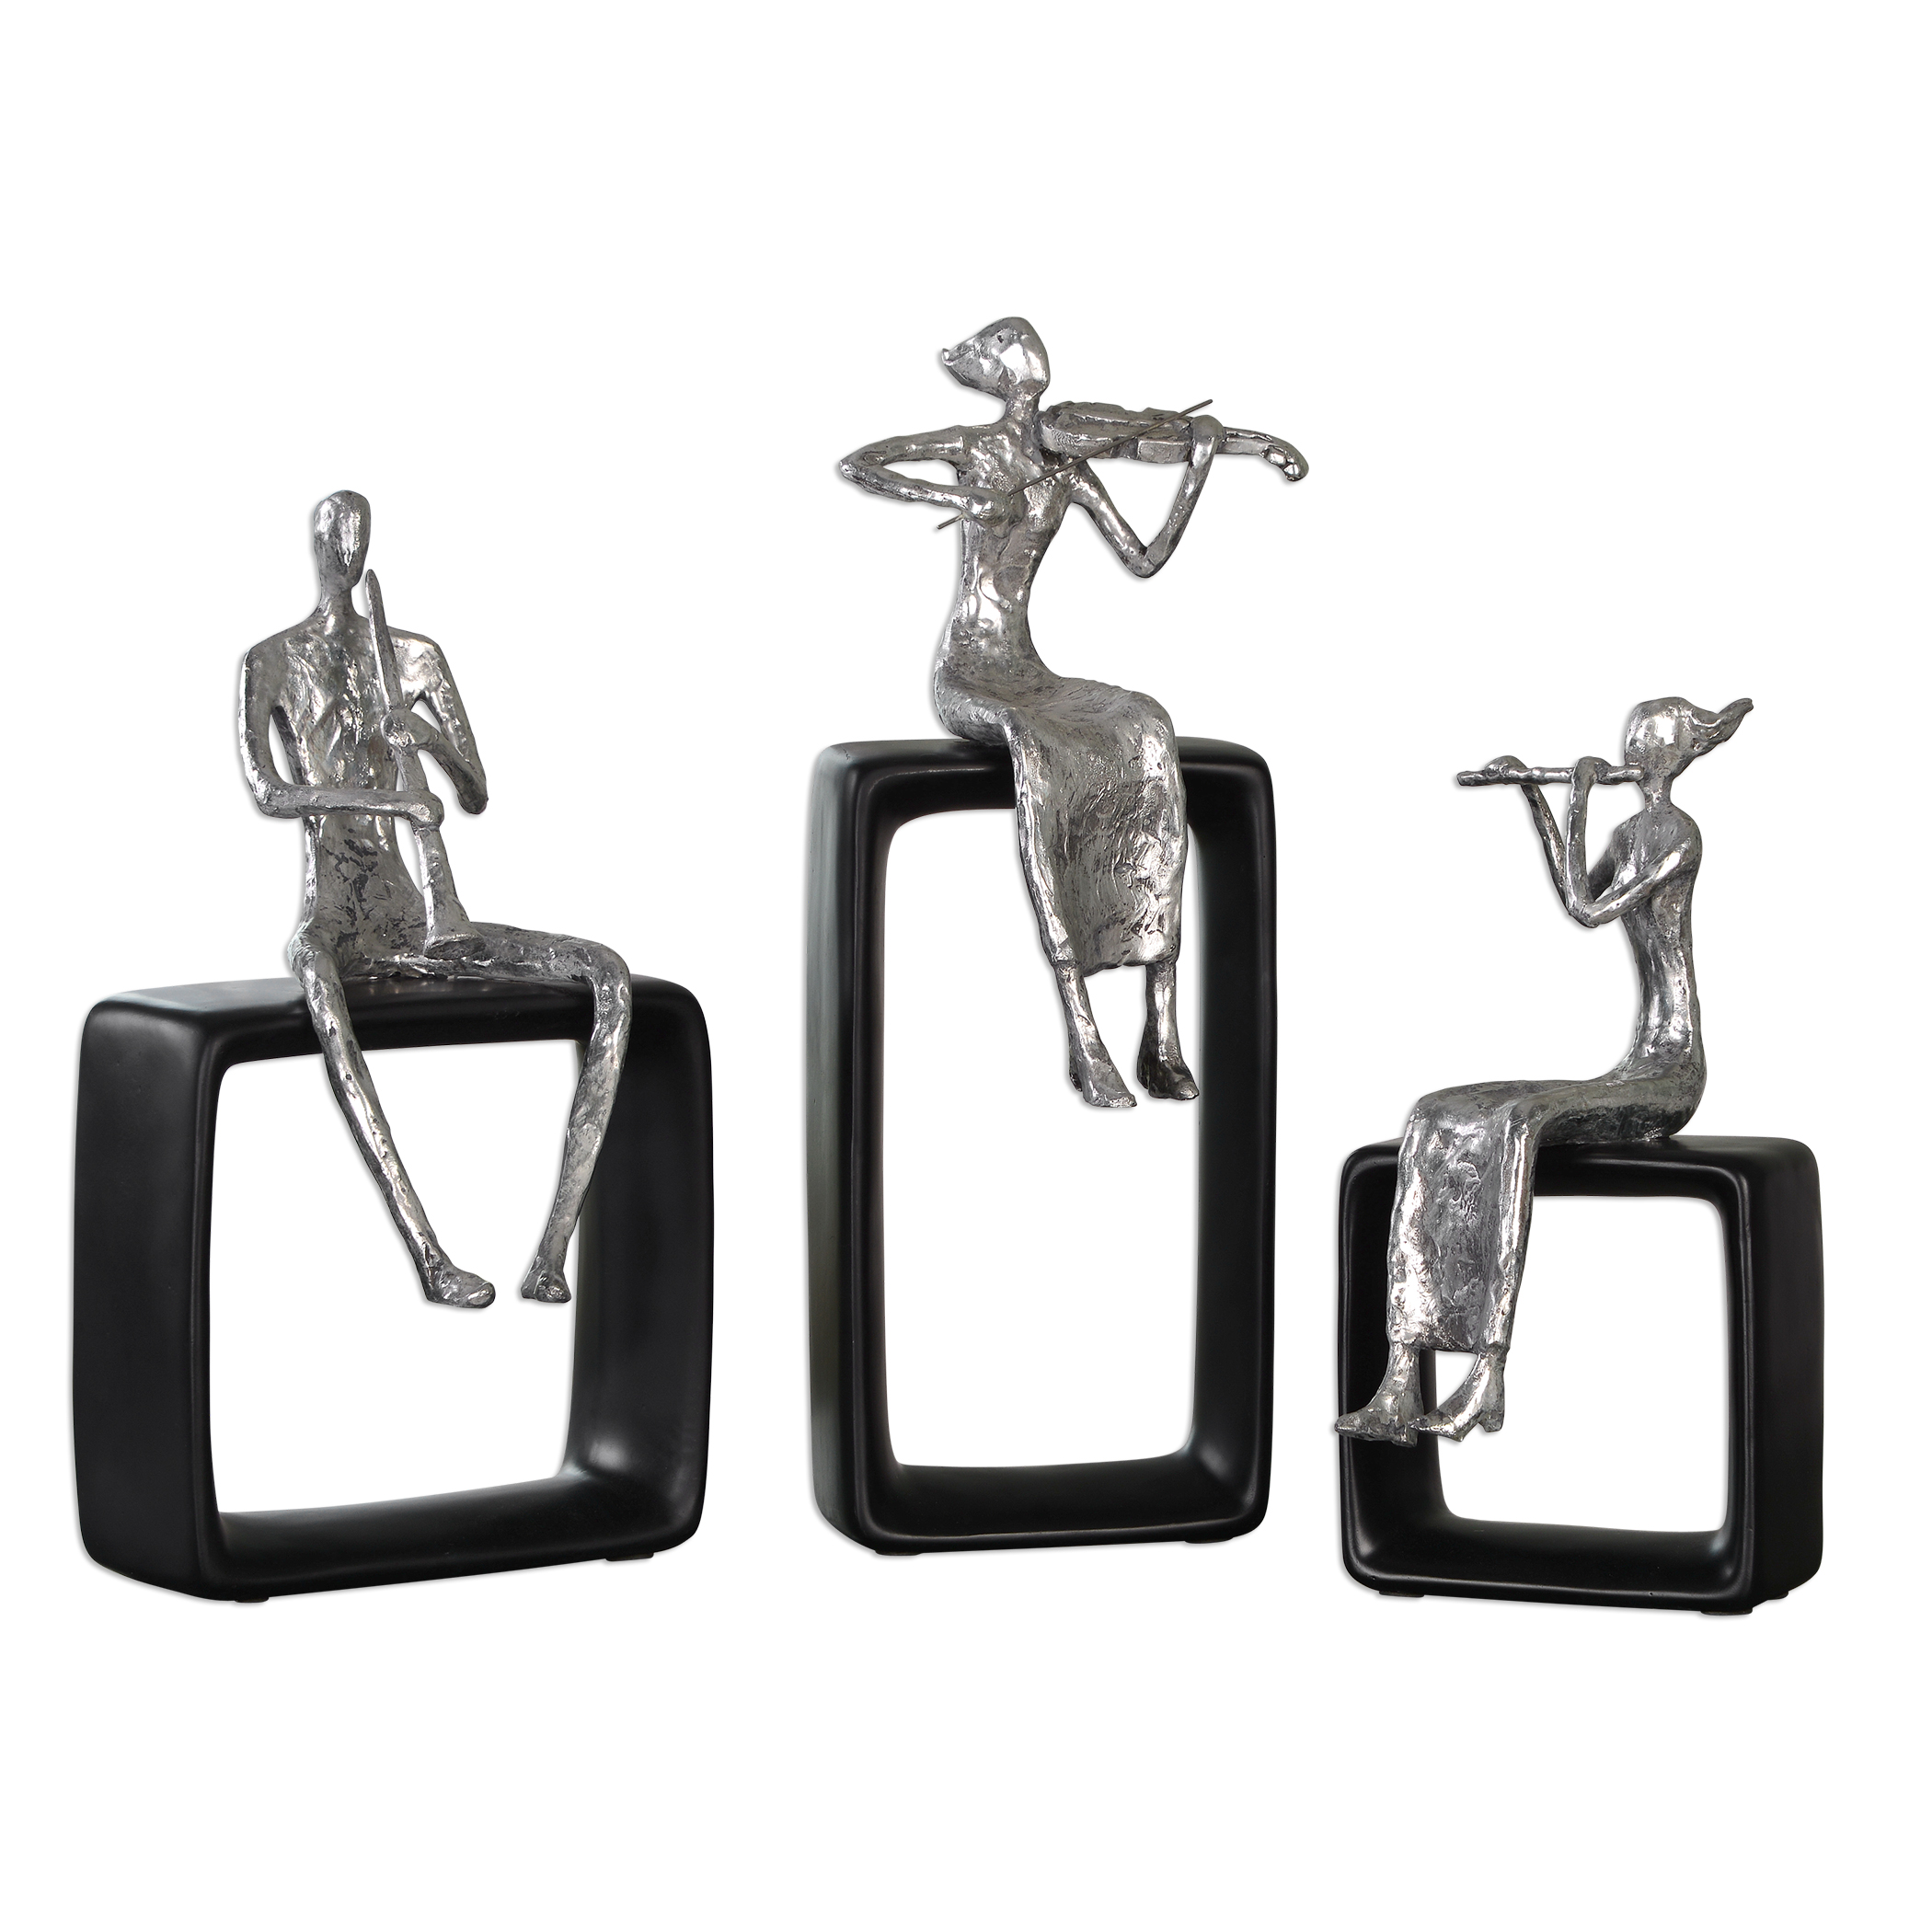 Accessories - Statues and Figurines Musical Ensemble Statues, S/3 by Uttermost at Suburban Furniture